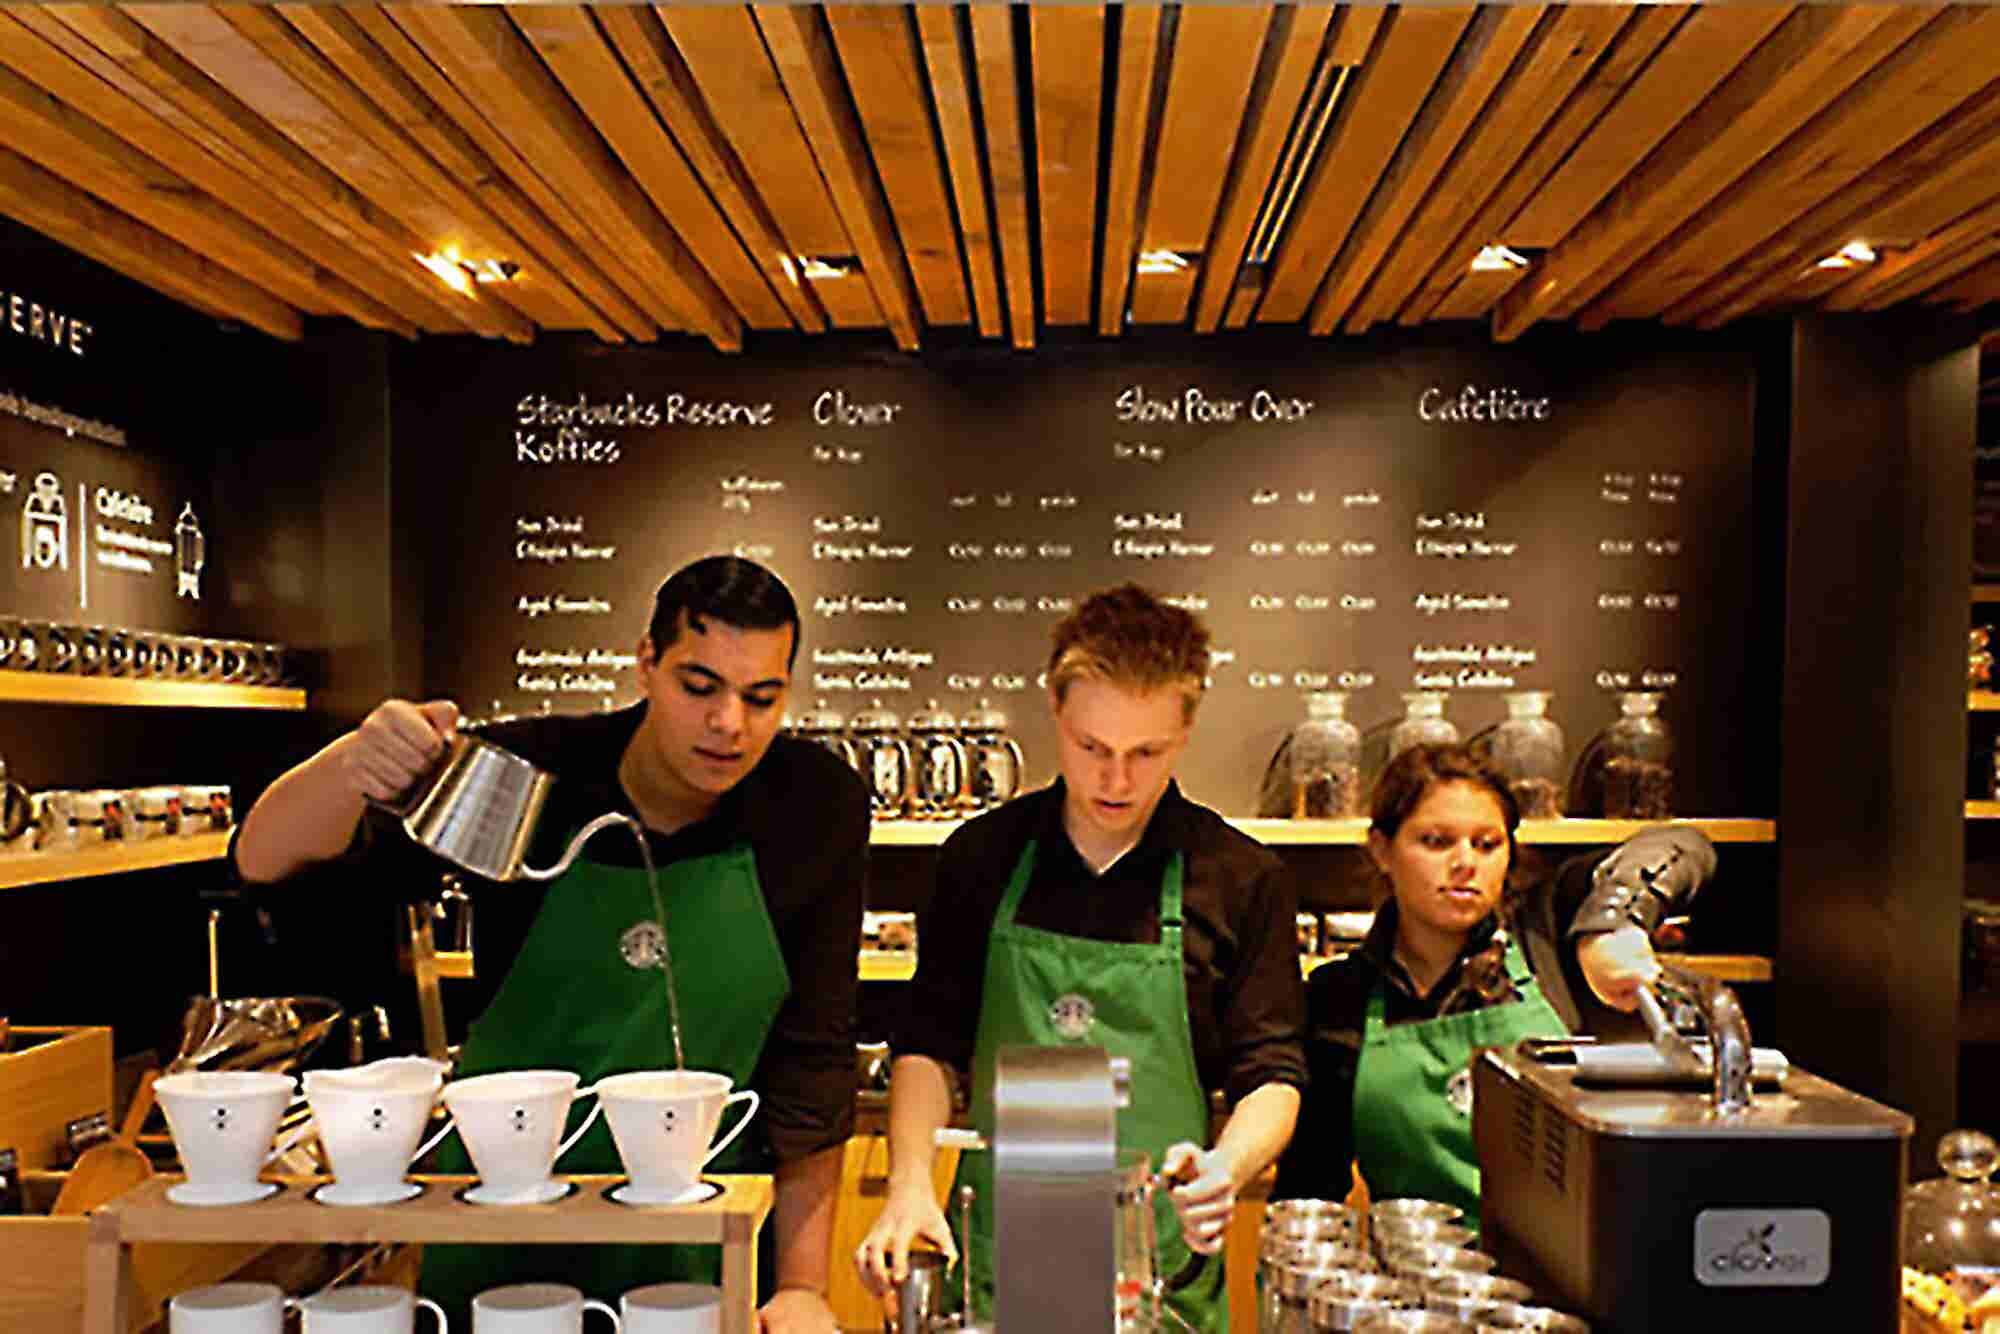 The 5 Restaurants That Corporate Workers Expense the Most